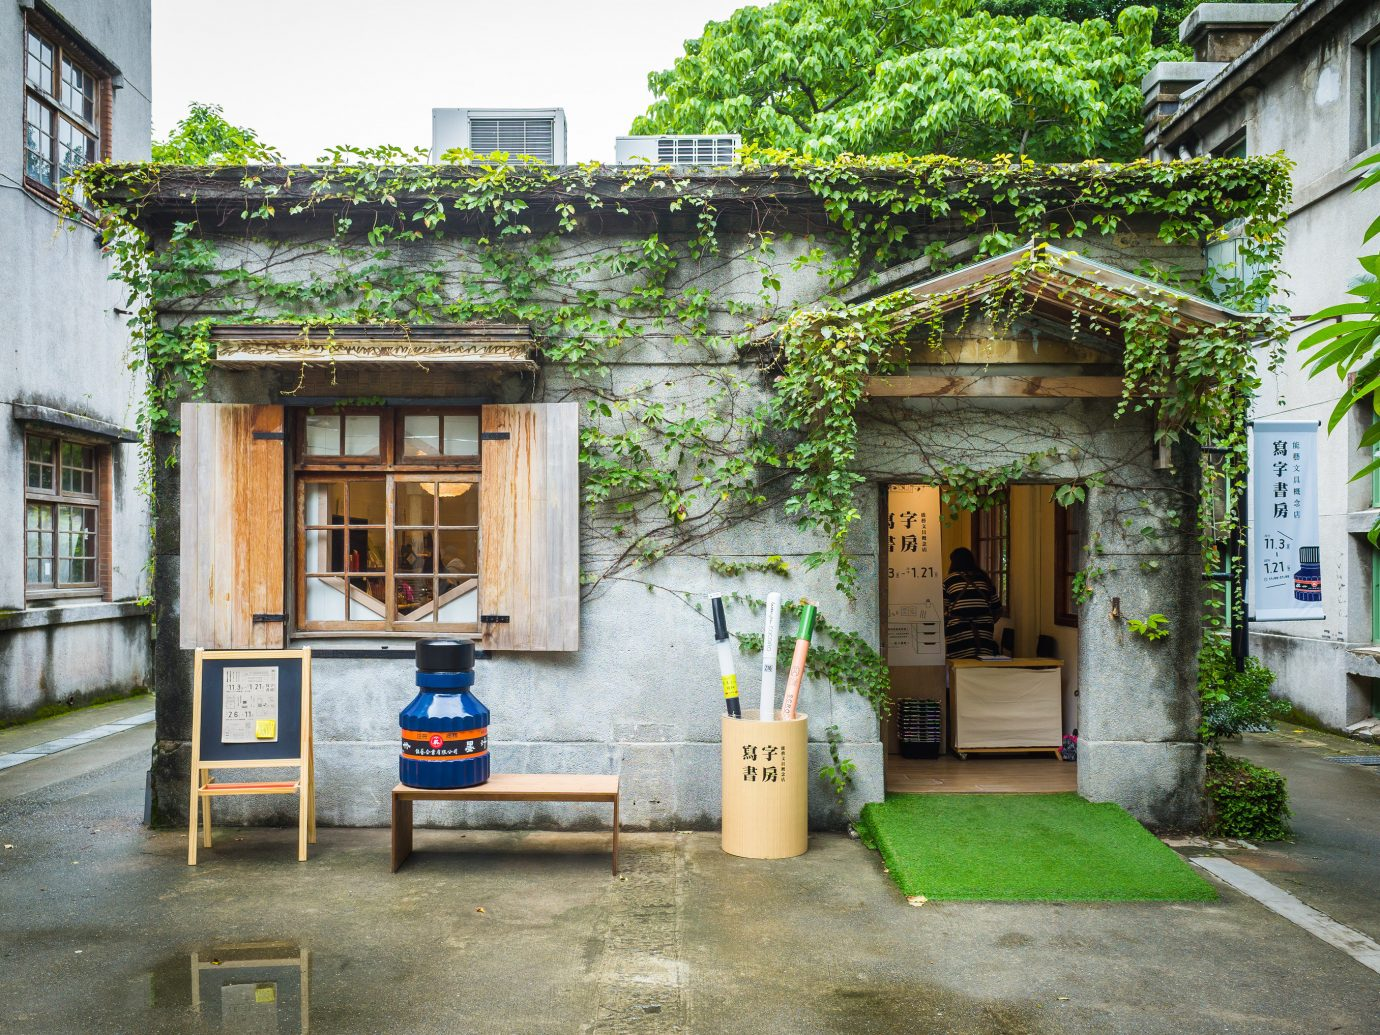 Arts + Culture Taipei Travel Tips Trip Ideas neighbourhood Town house tree window facade street Courtyard plant real estate cottage building City road